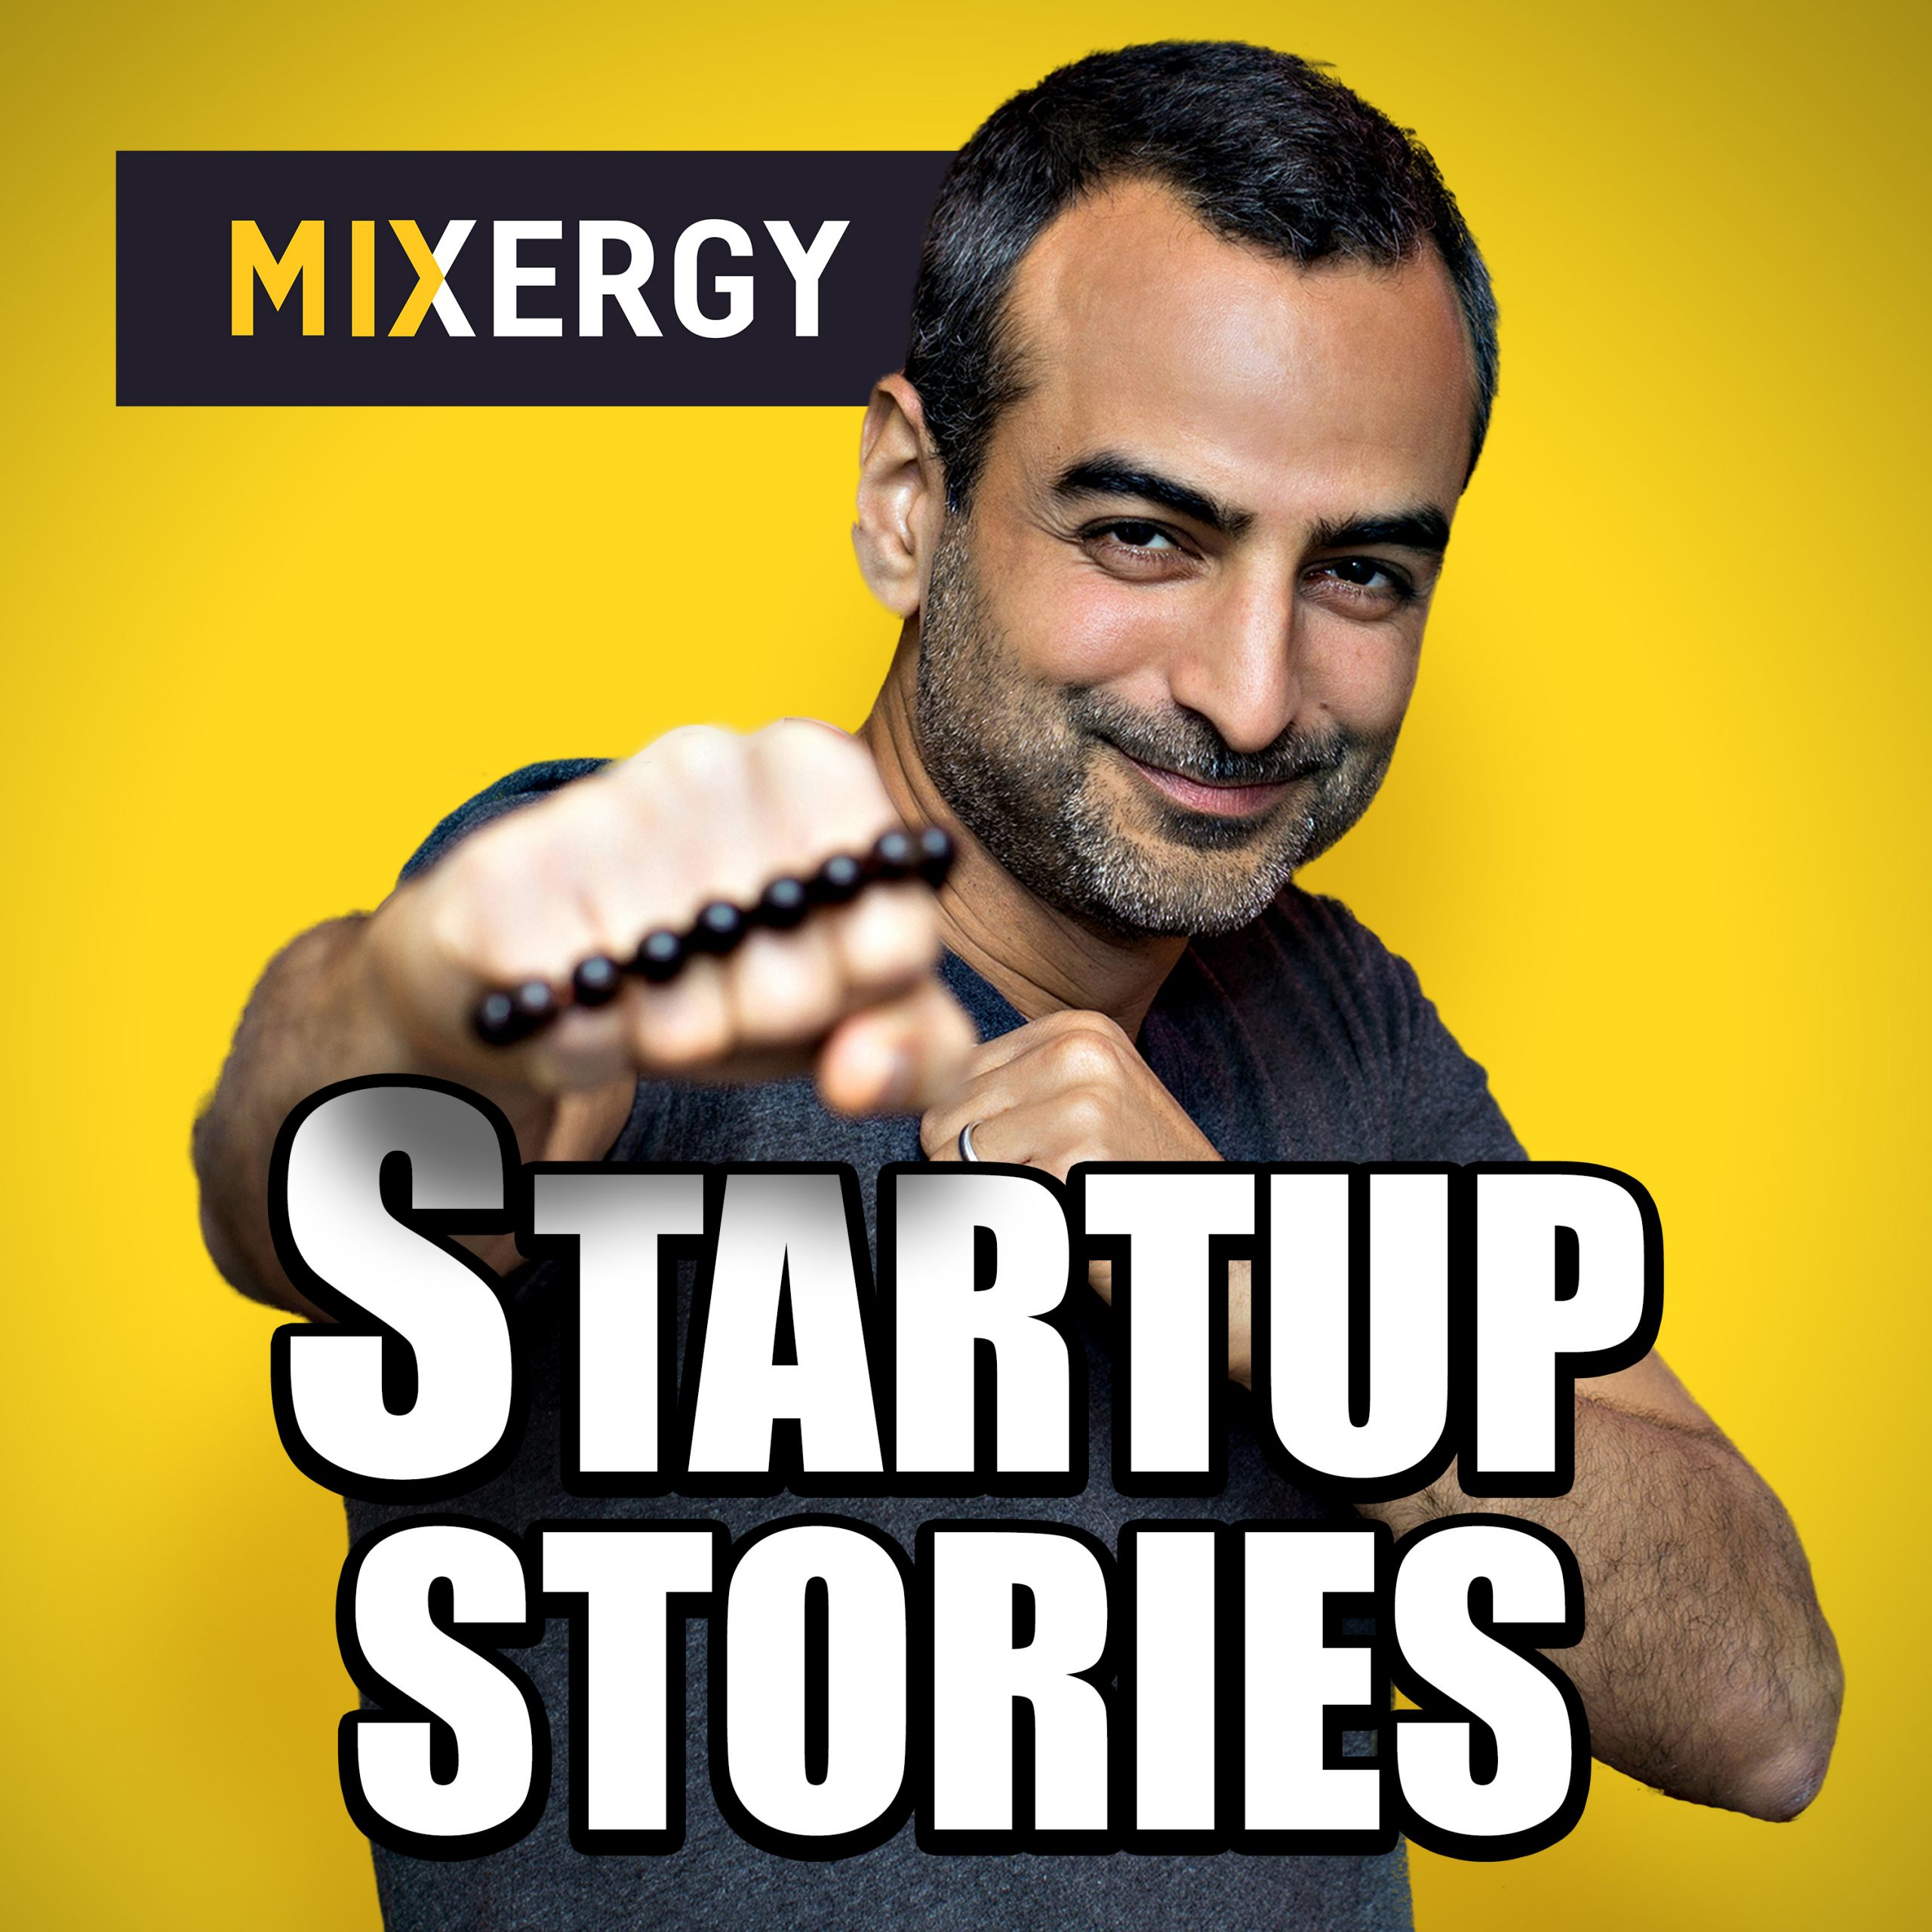 #1955 How a Mixergy listener went from 0 to $2M in ARR in 2 years